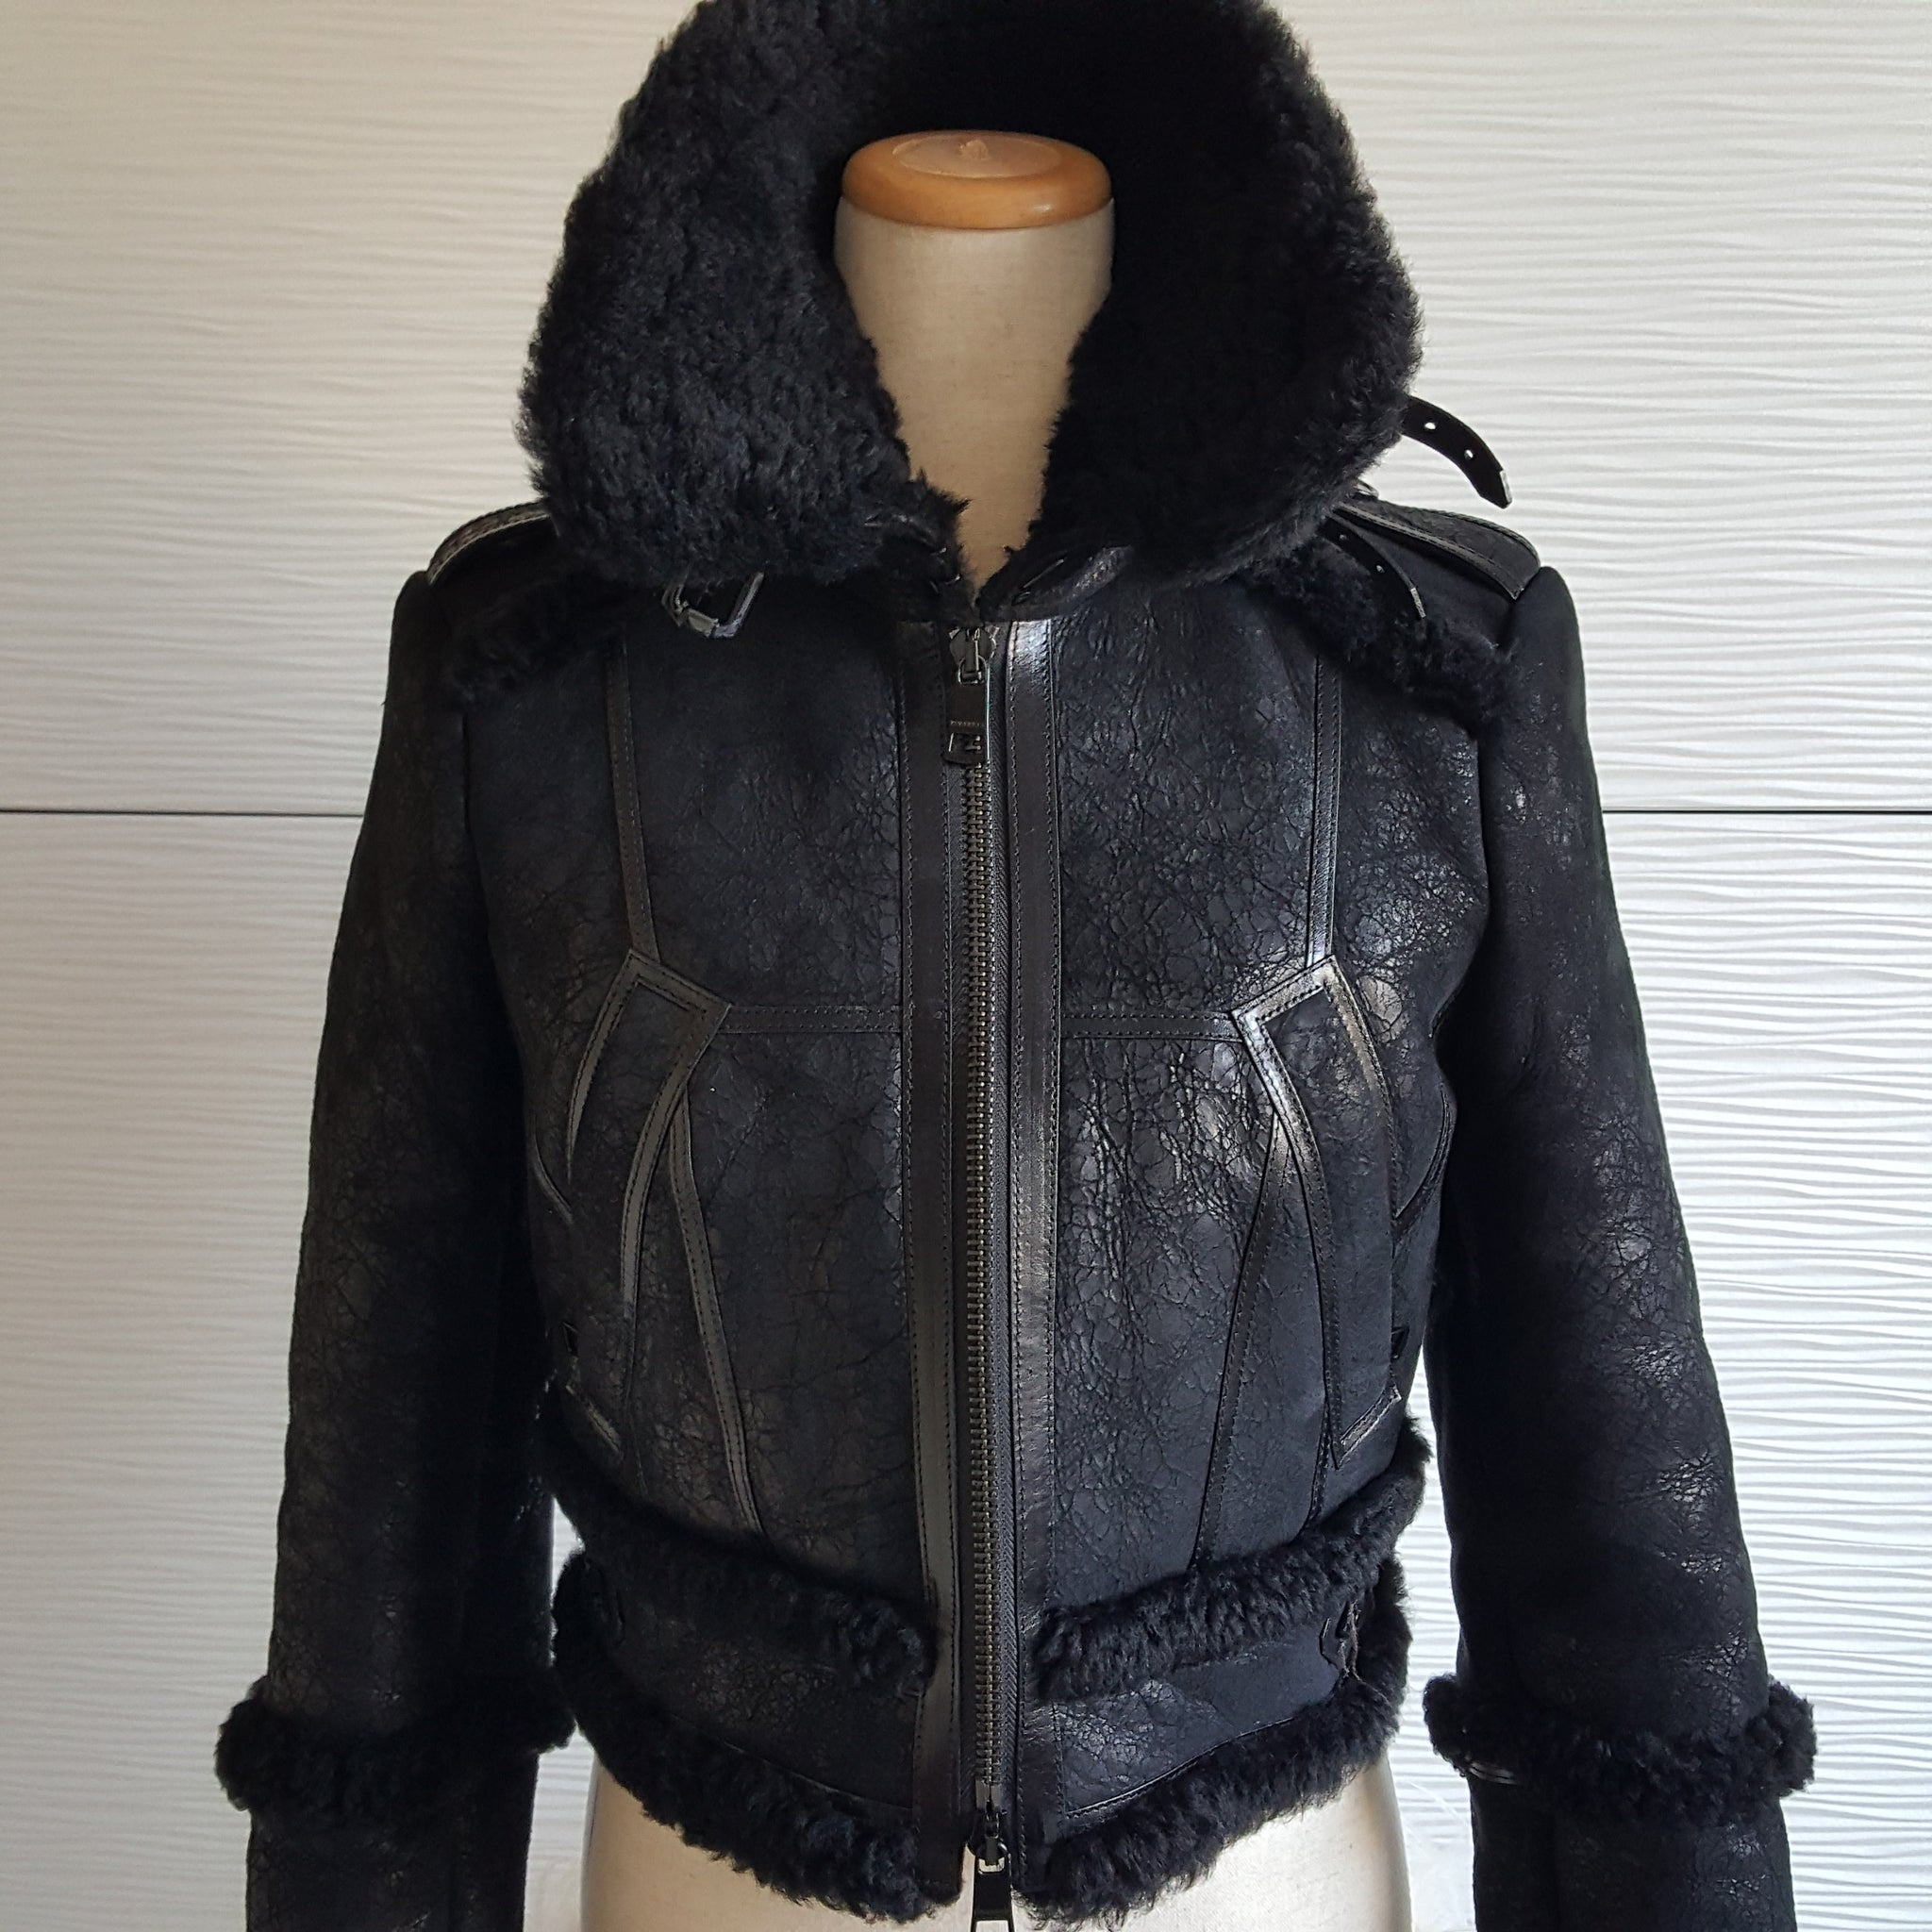 BURBERRY LONDON CROPPED SHEARLING BOMBER JACKET - SIZE US 6